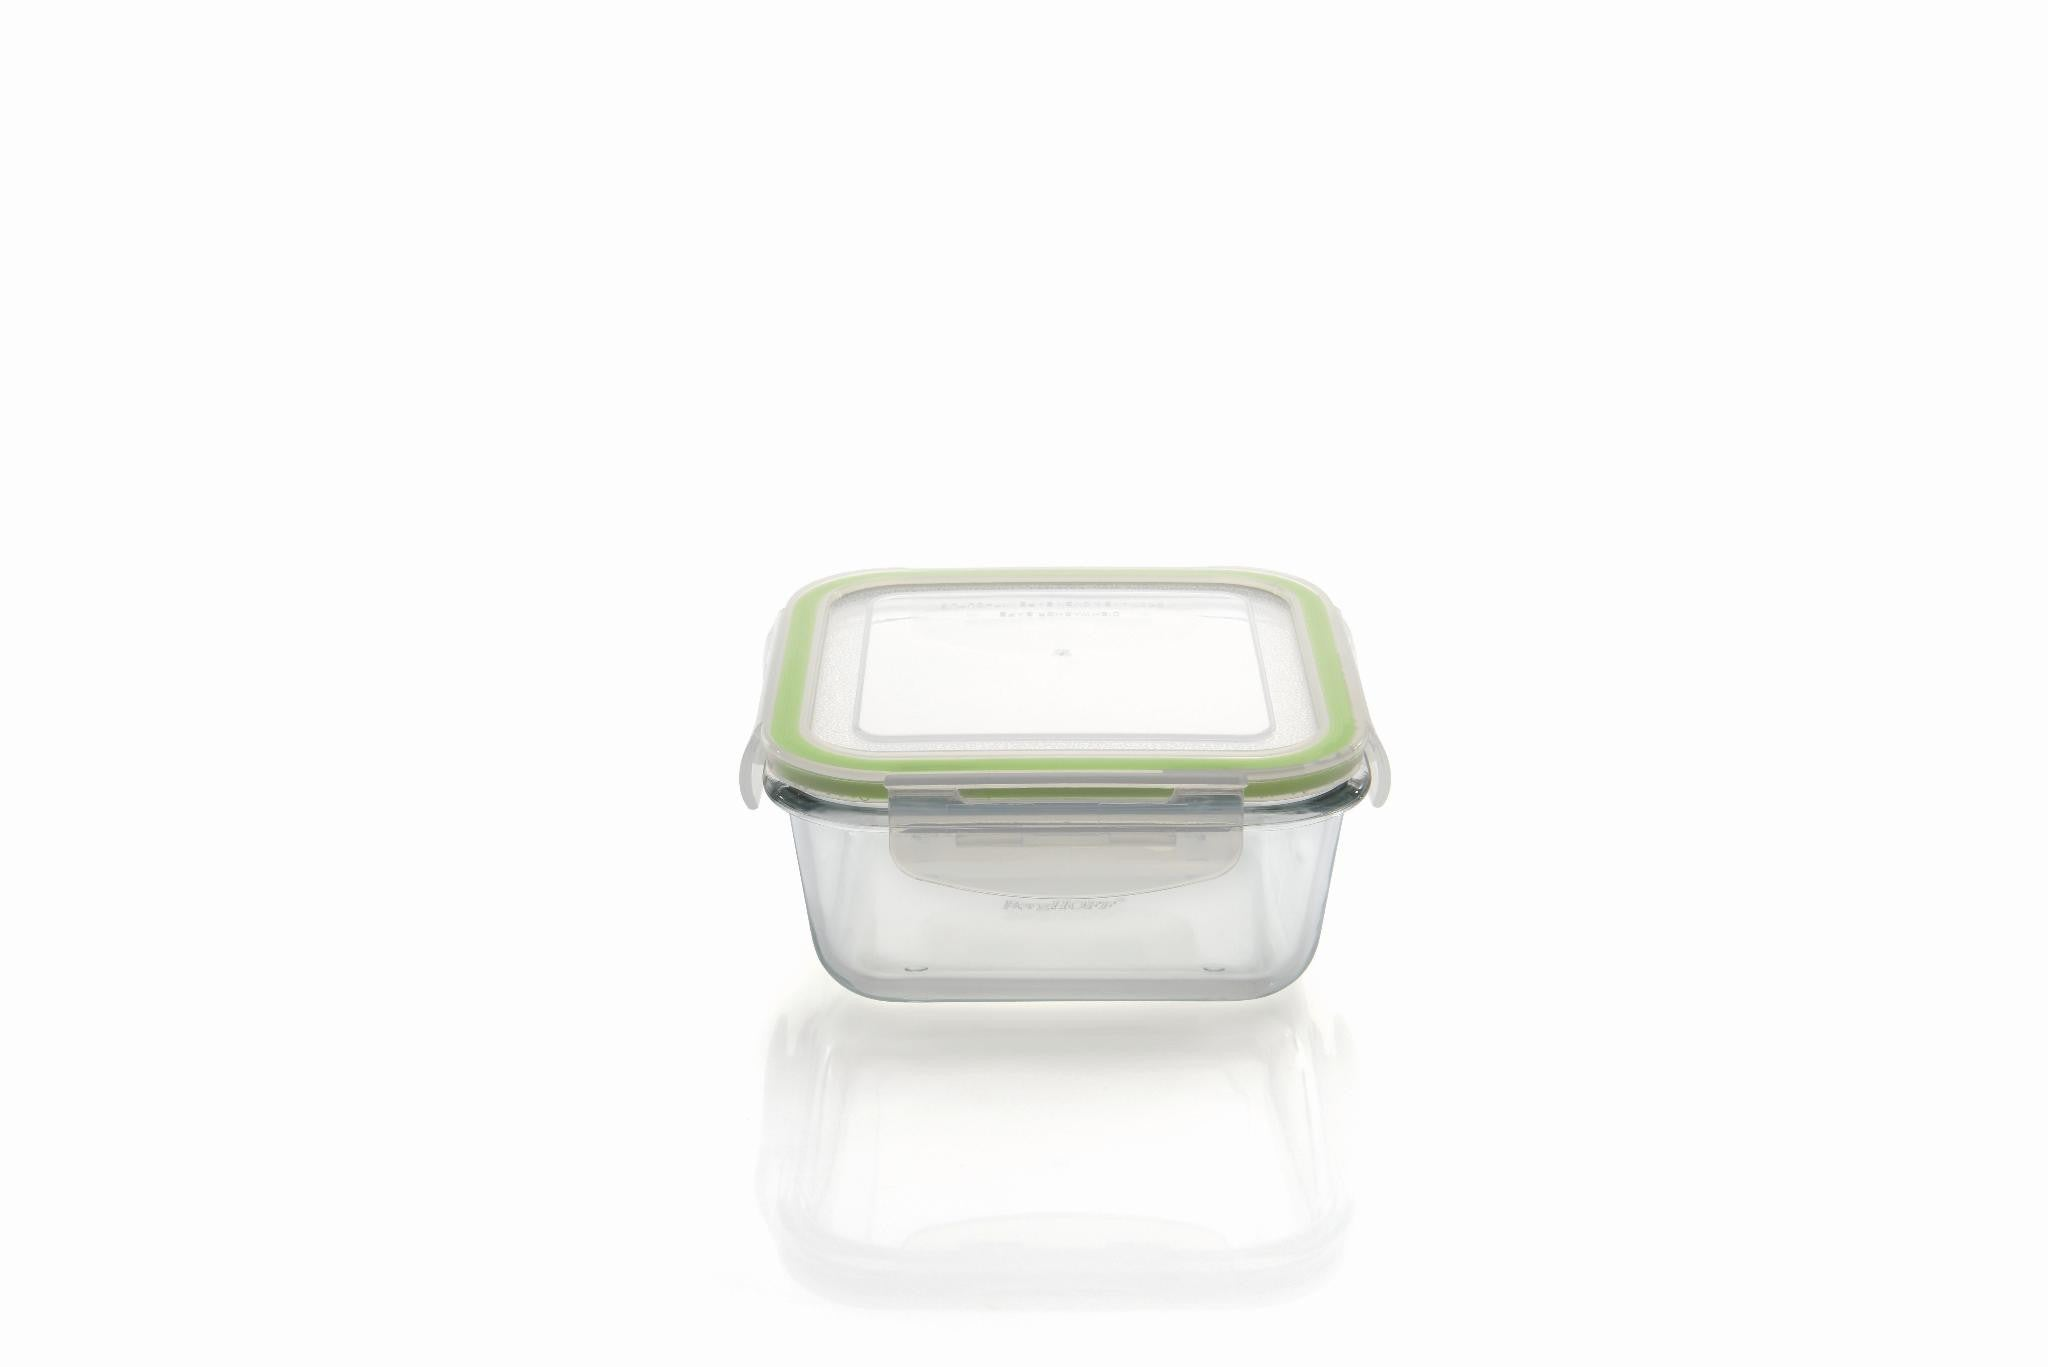 Studio 0.7L Square Glass Baking Dish with Storage Lid